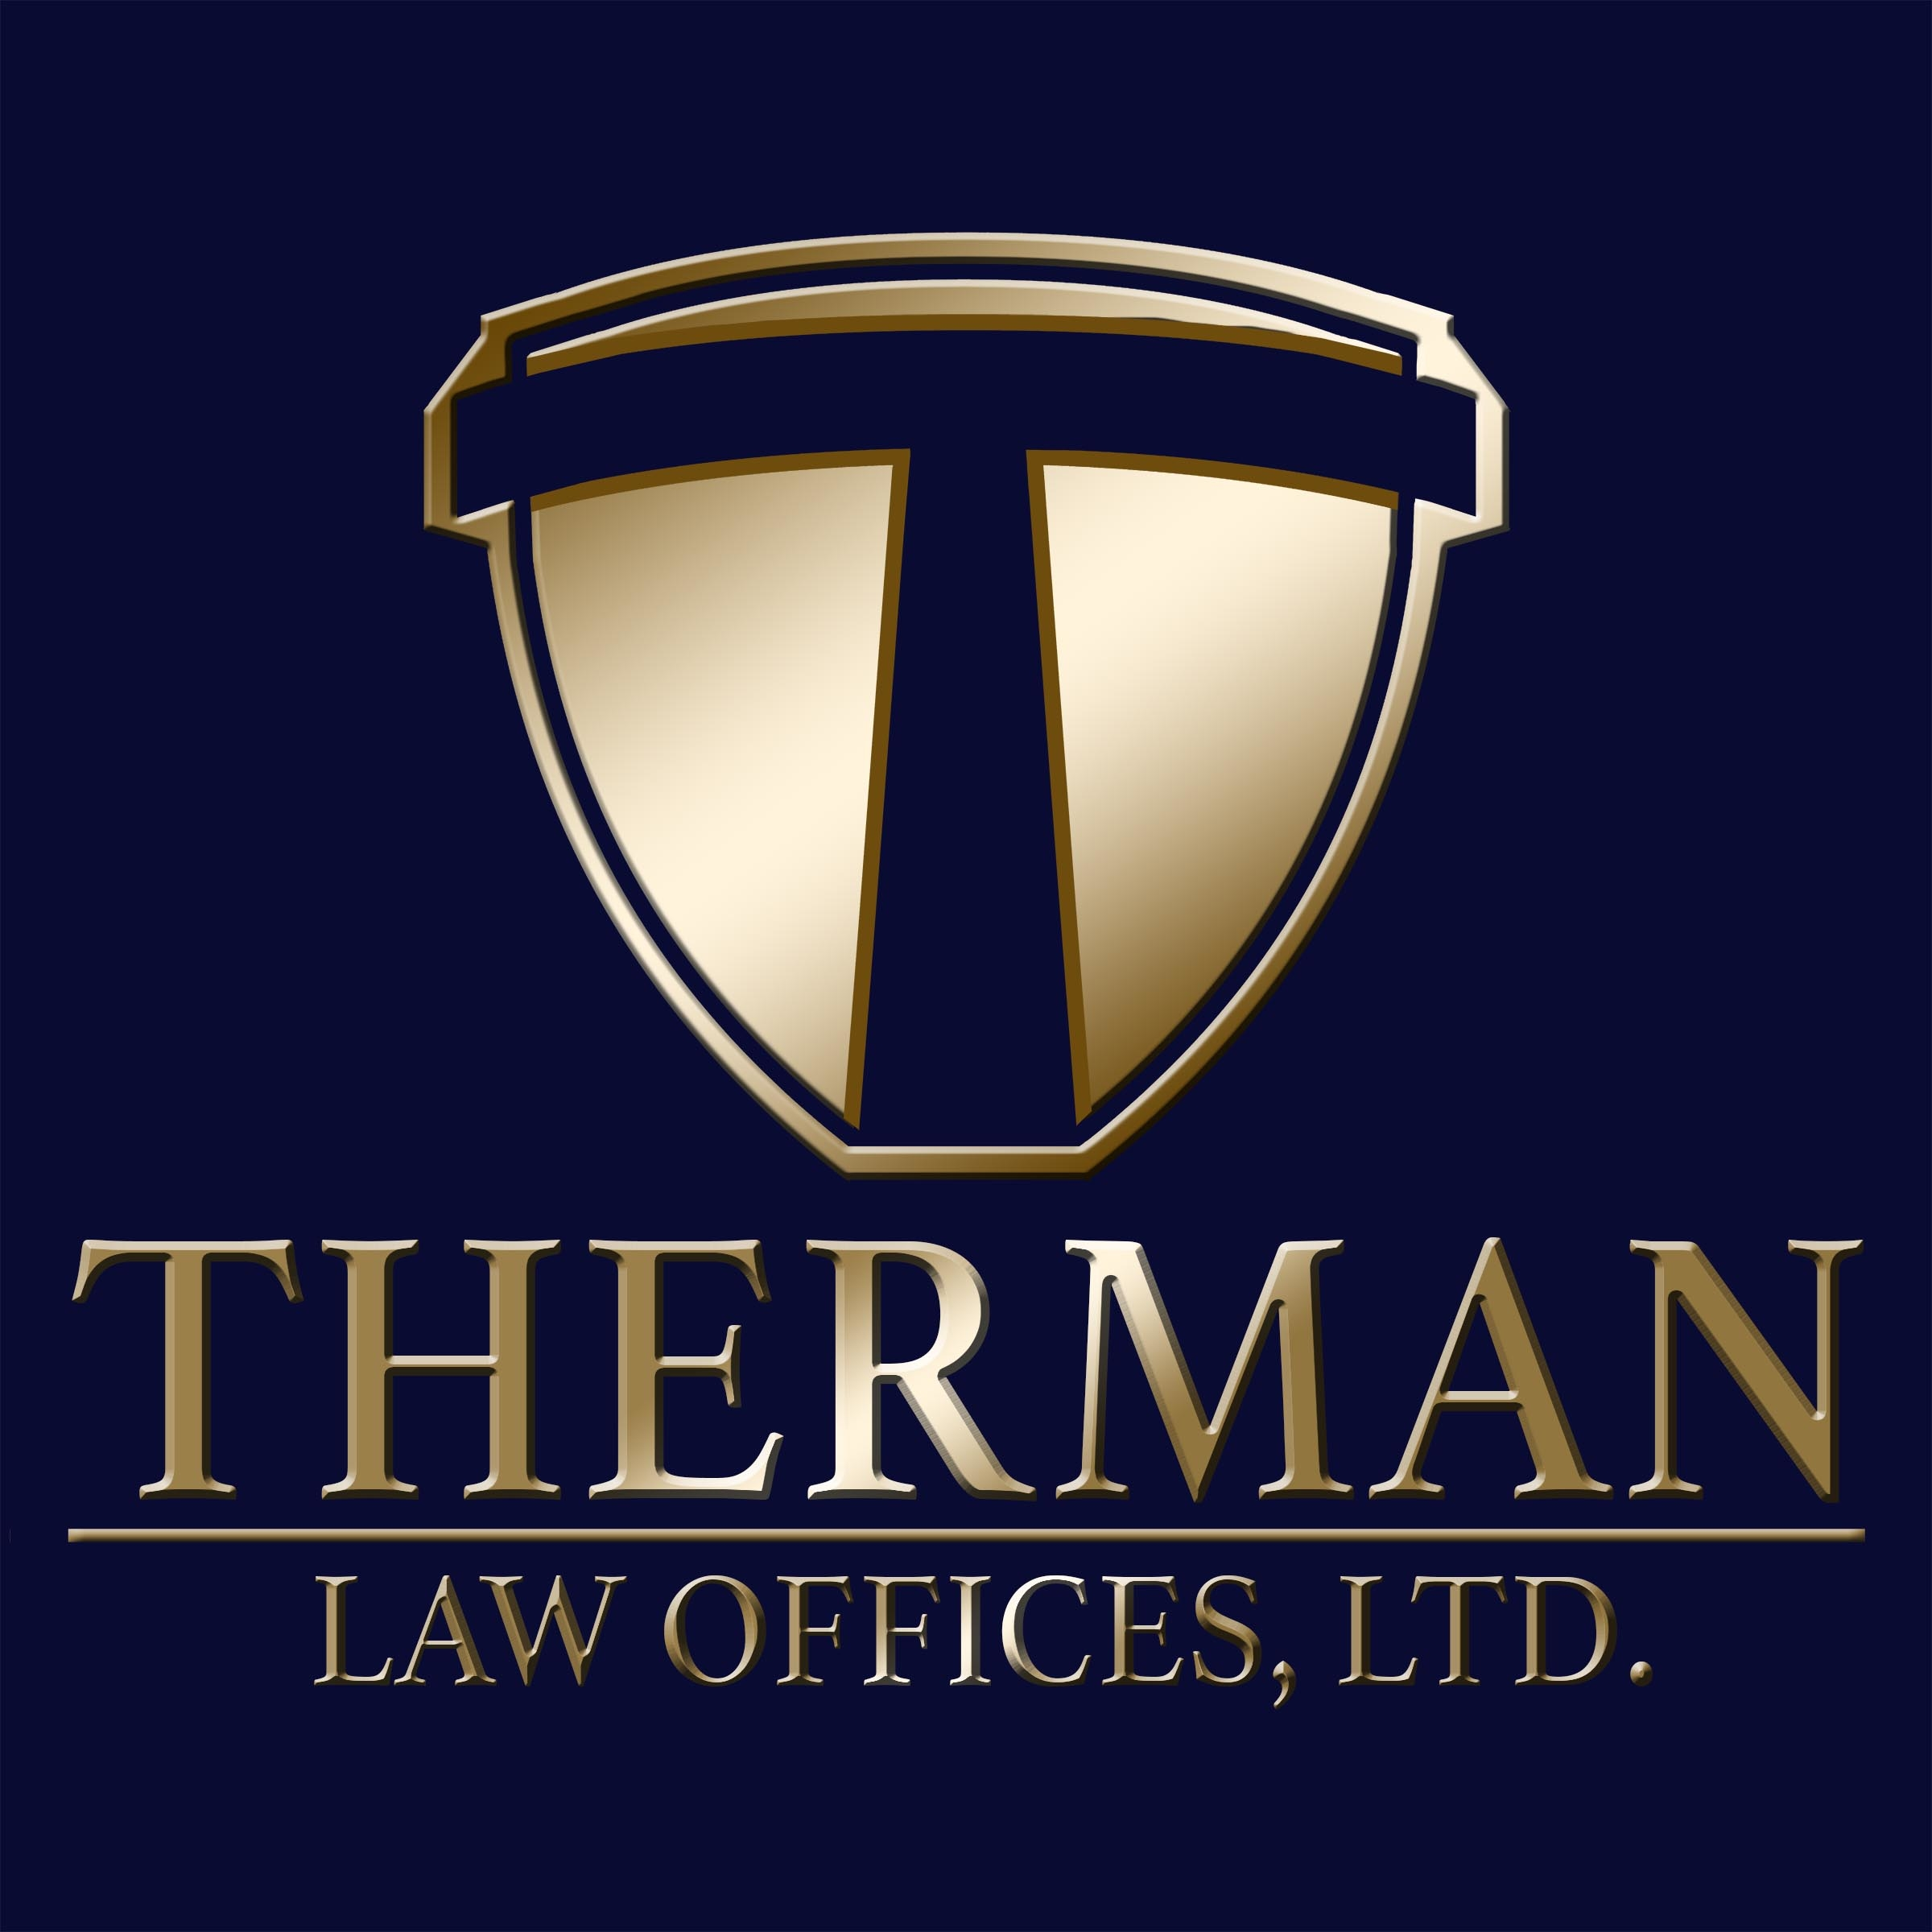 Therman Law Offices